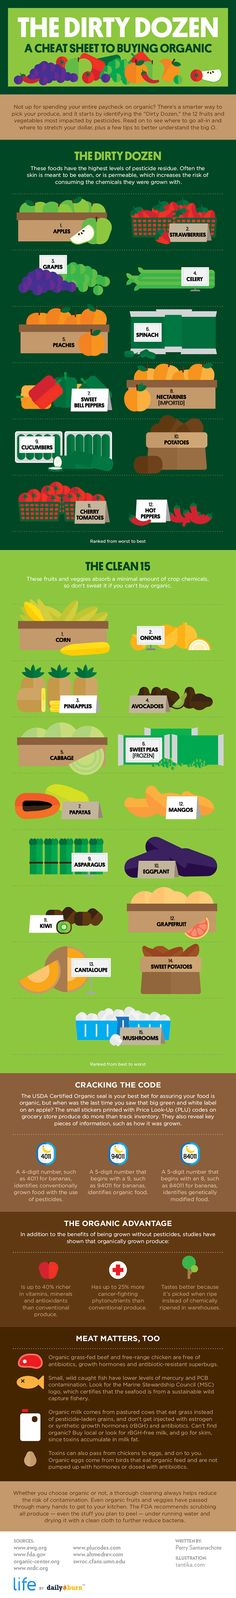 Cheat Sheet to Buying Organic #food #grocery #foodpreparation #goodtoknow